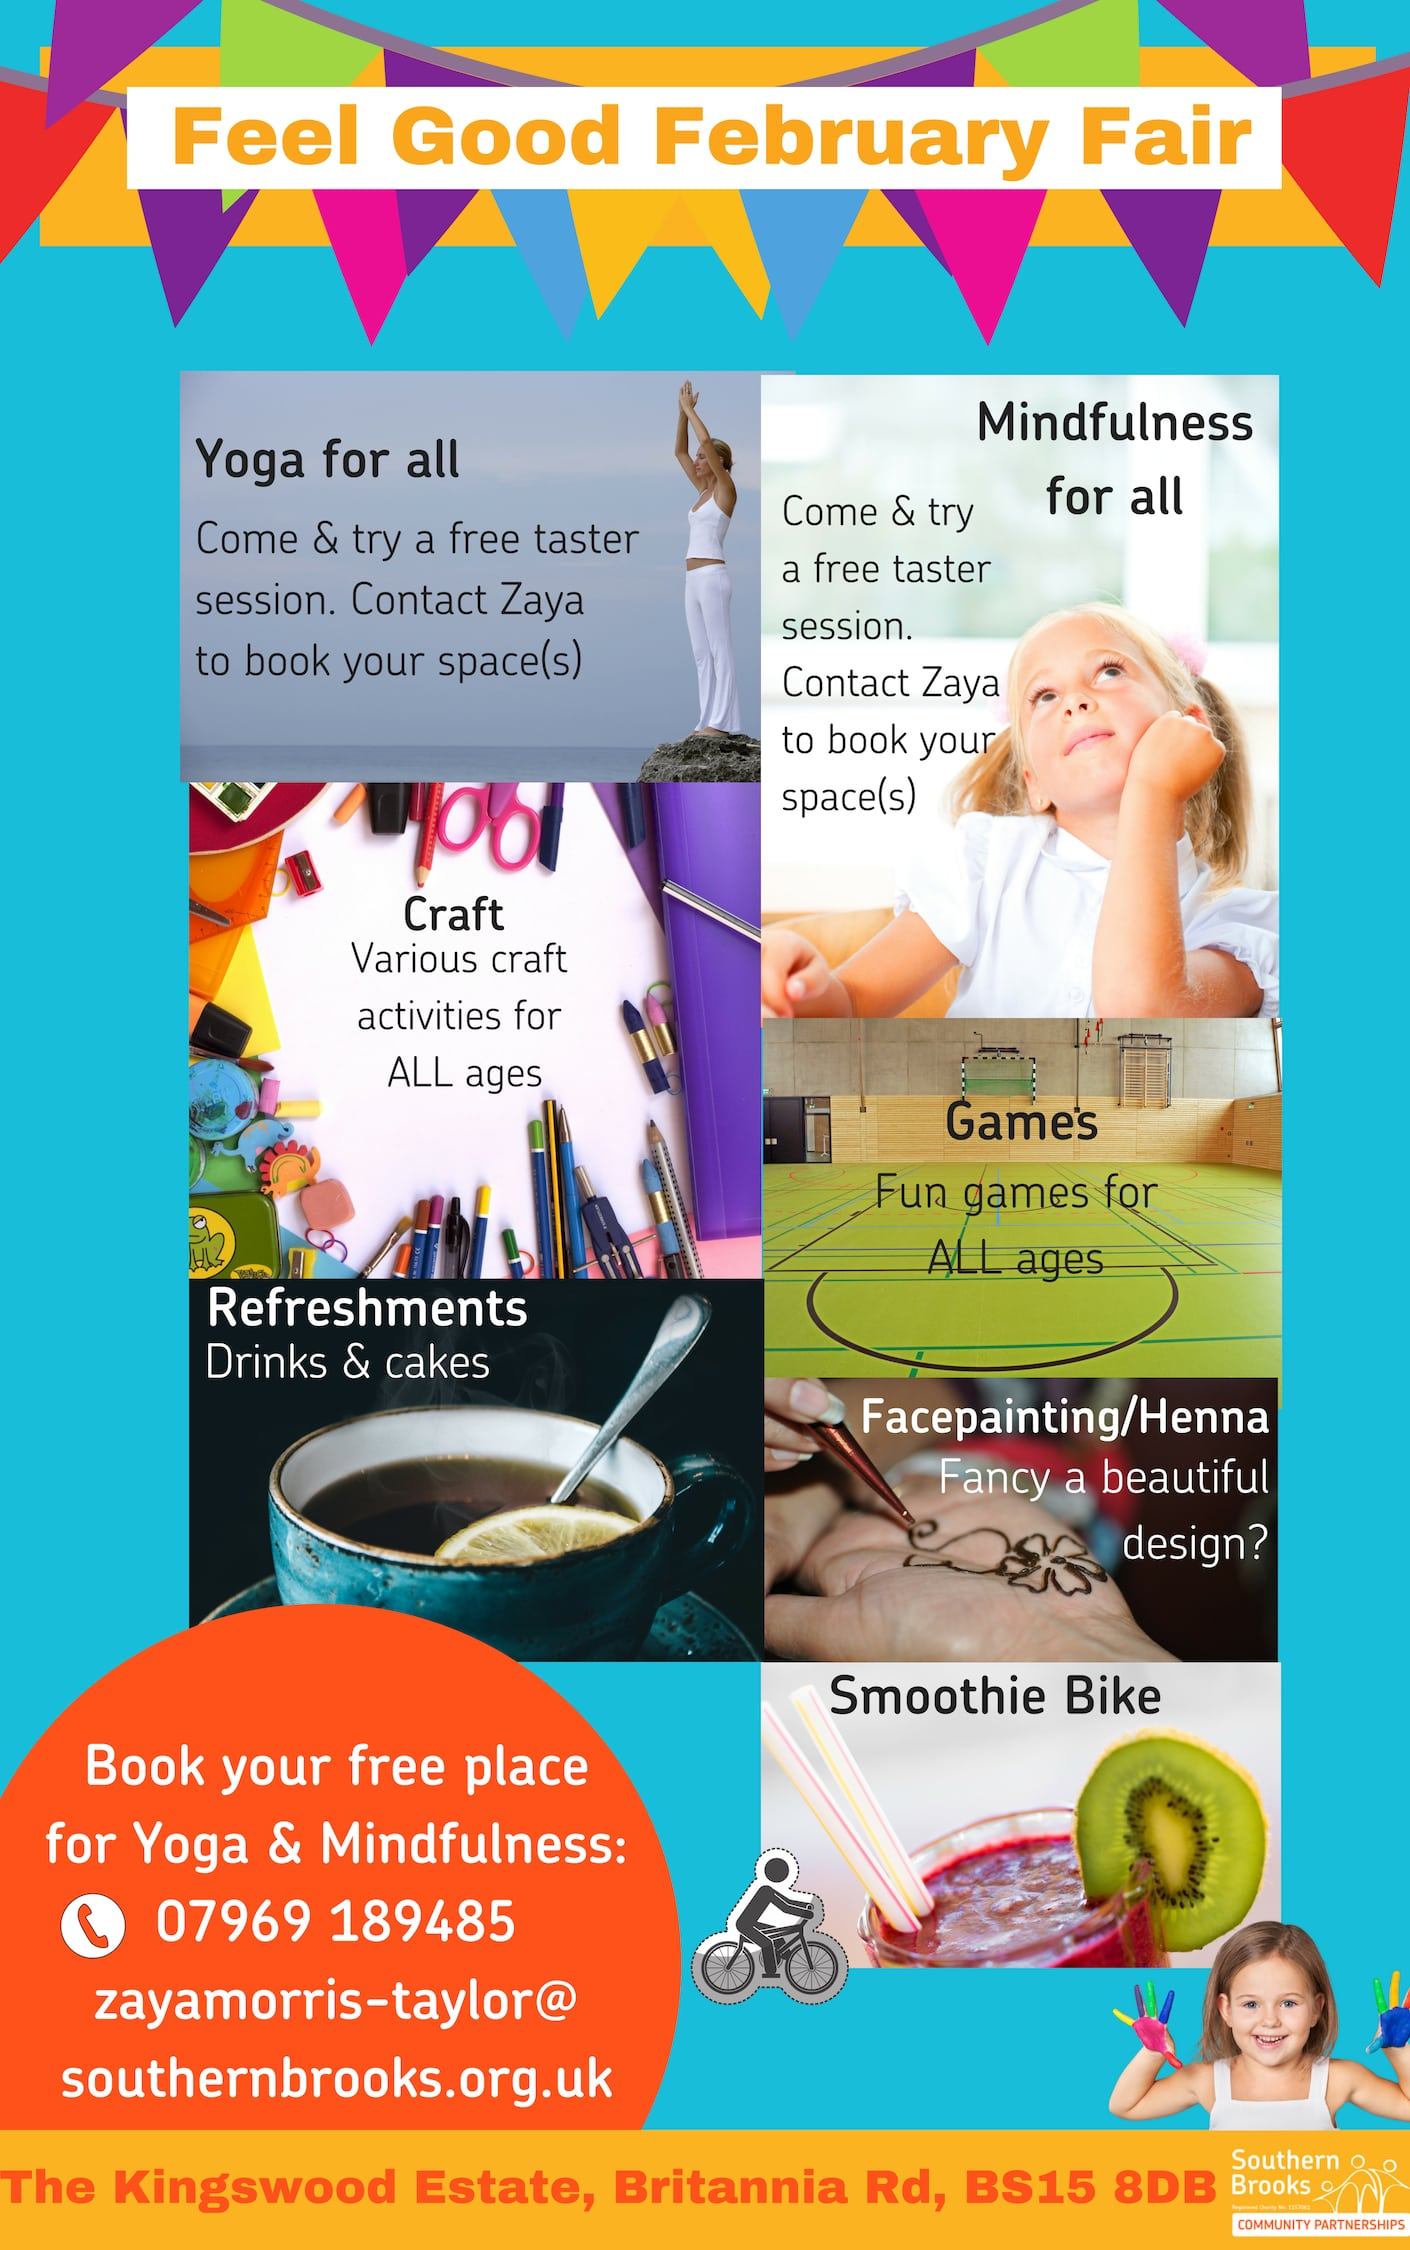 Feel Good February Fair In Kingswood Southern Brooks Community